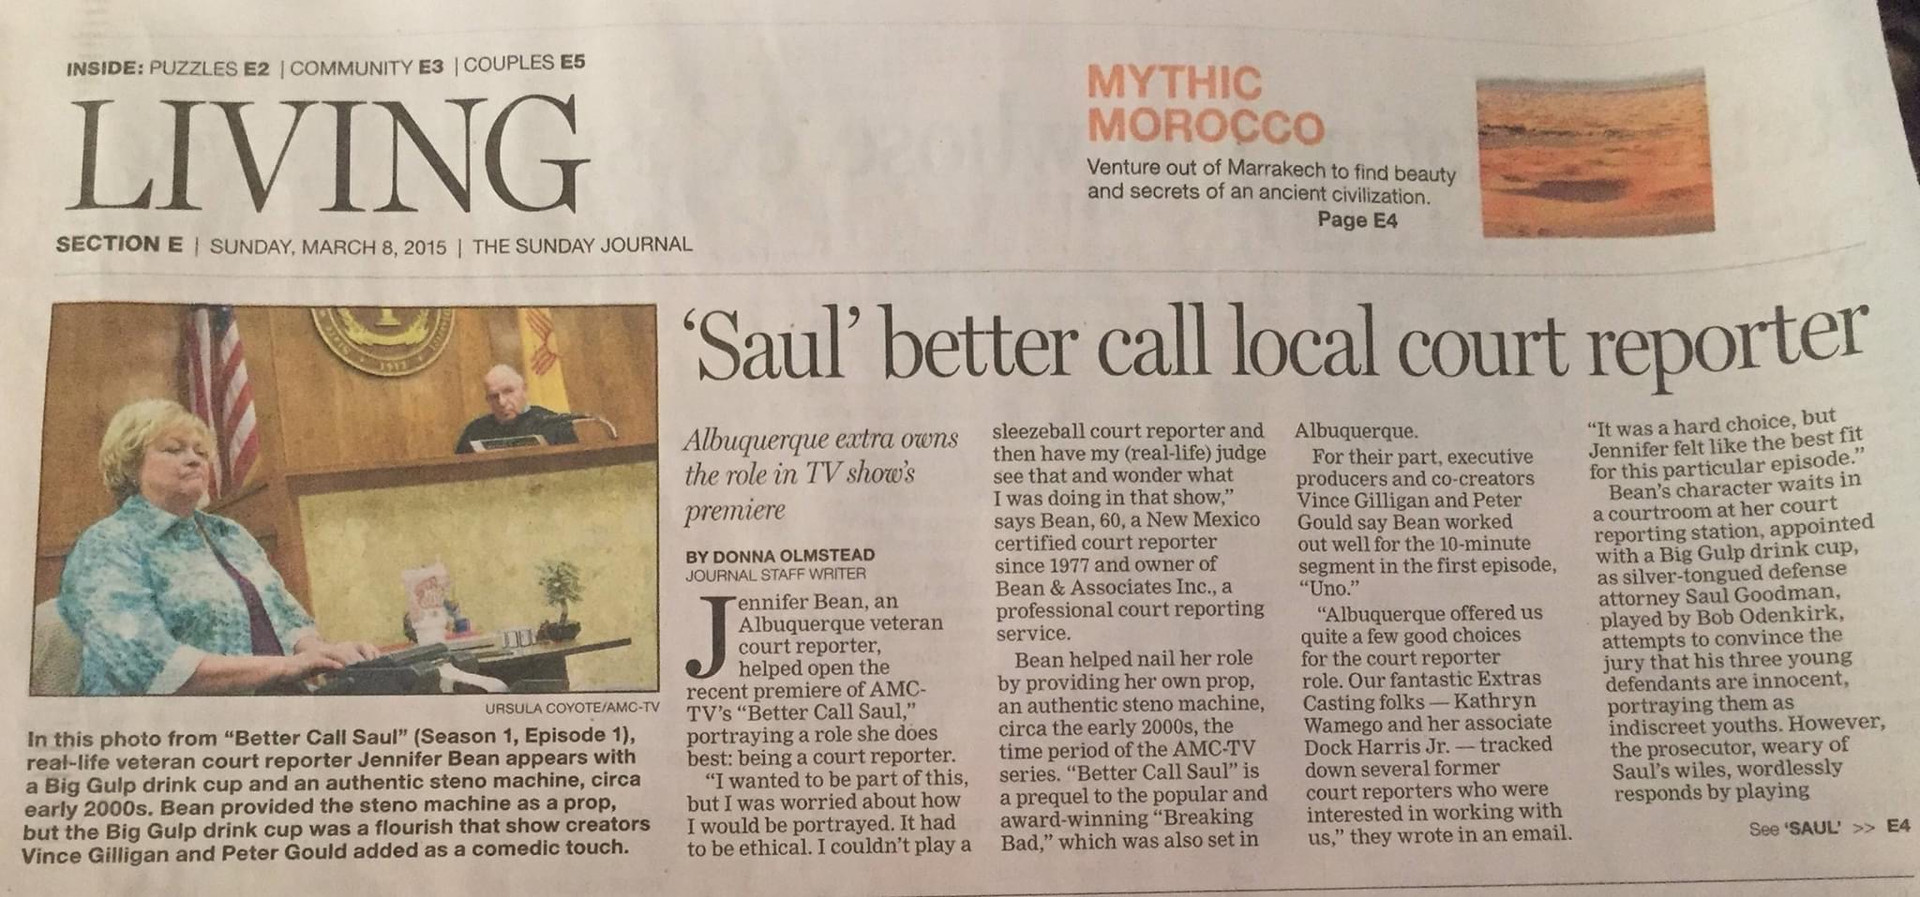 Newspaper article about Local Court Reporter acting on Better Call Saul!